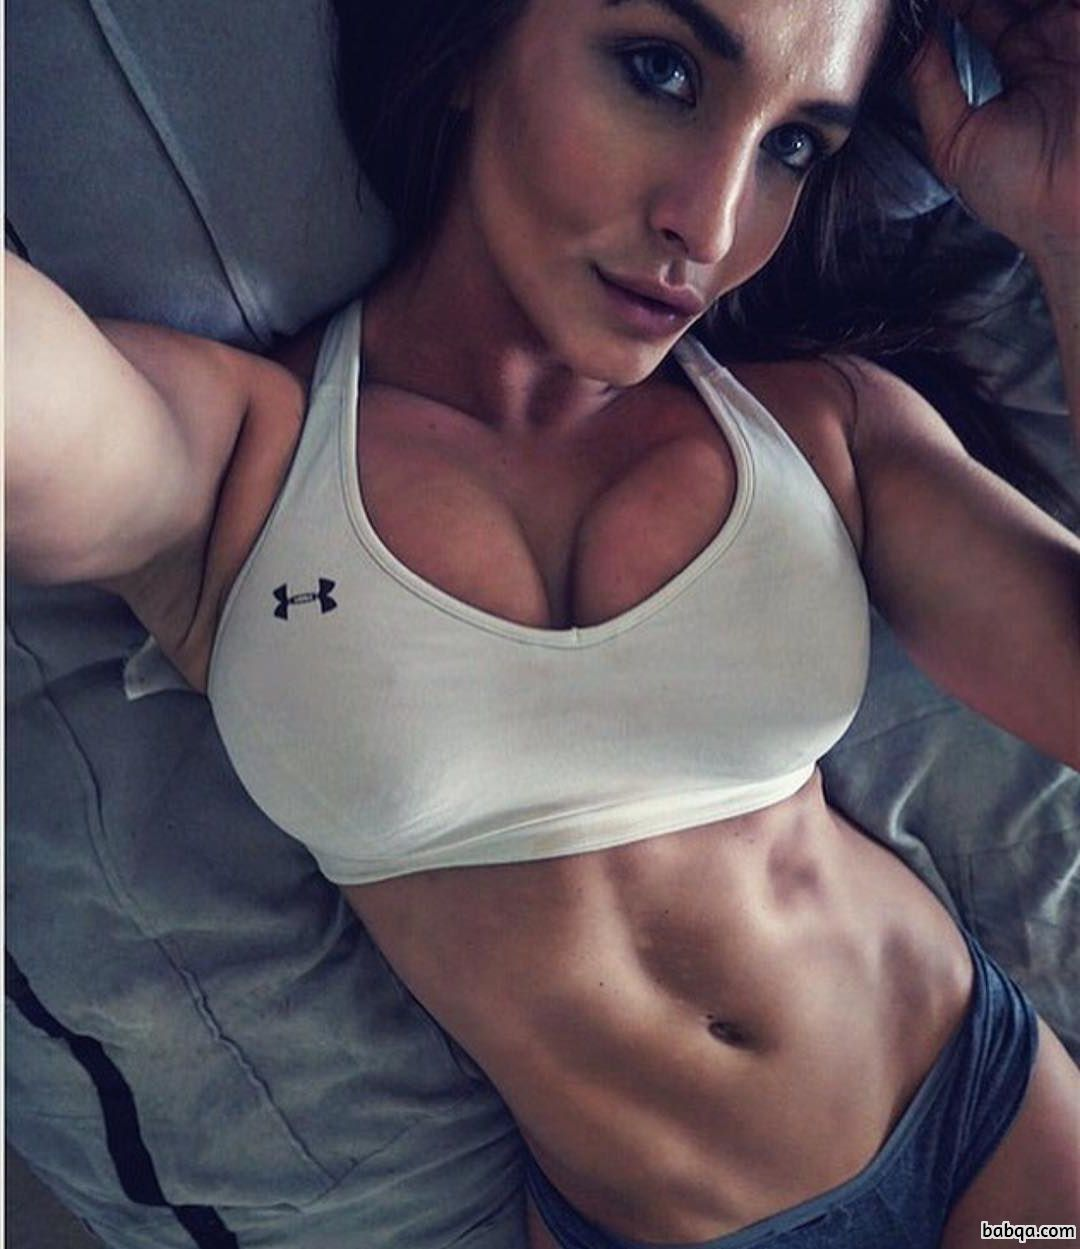 perfect female with fitness body and toned biceps post from instagram